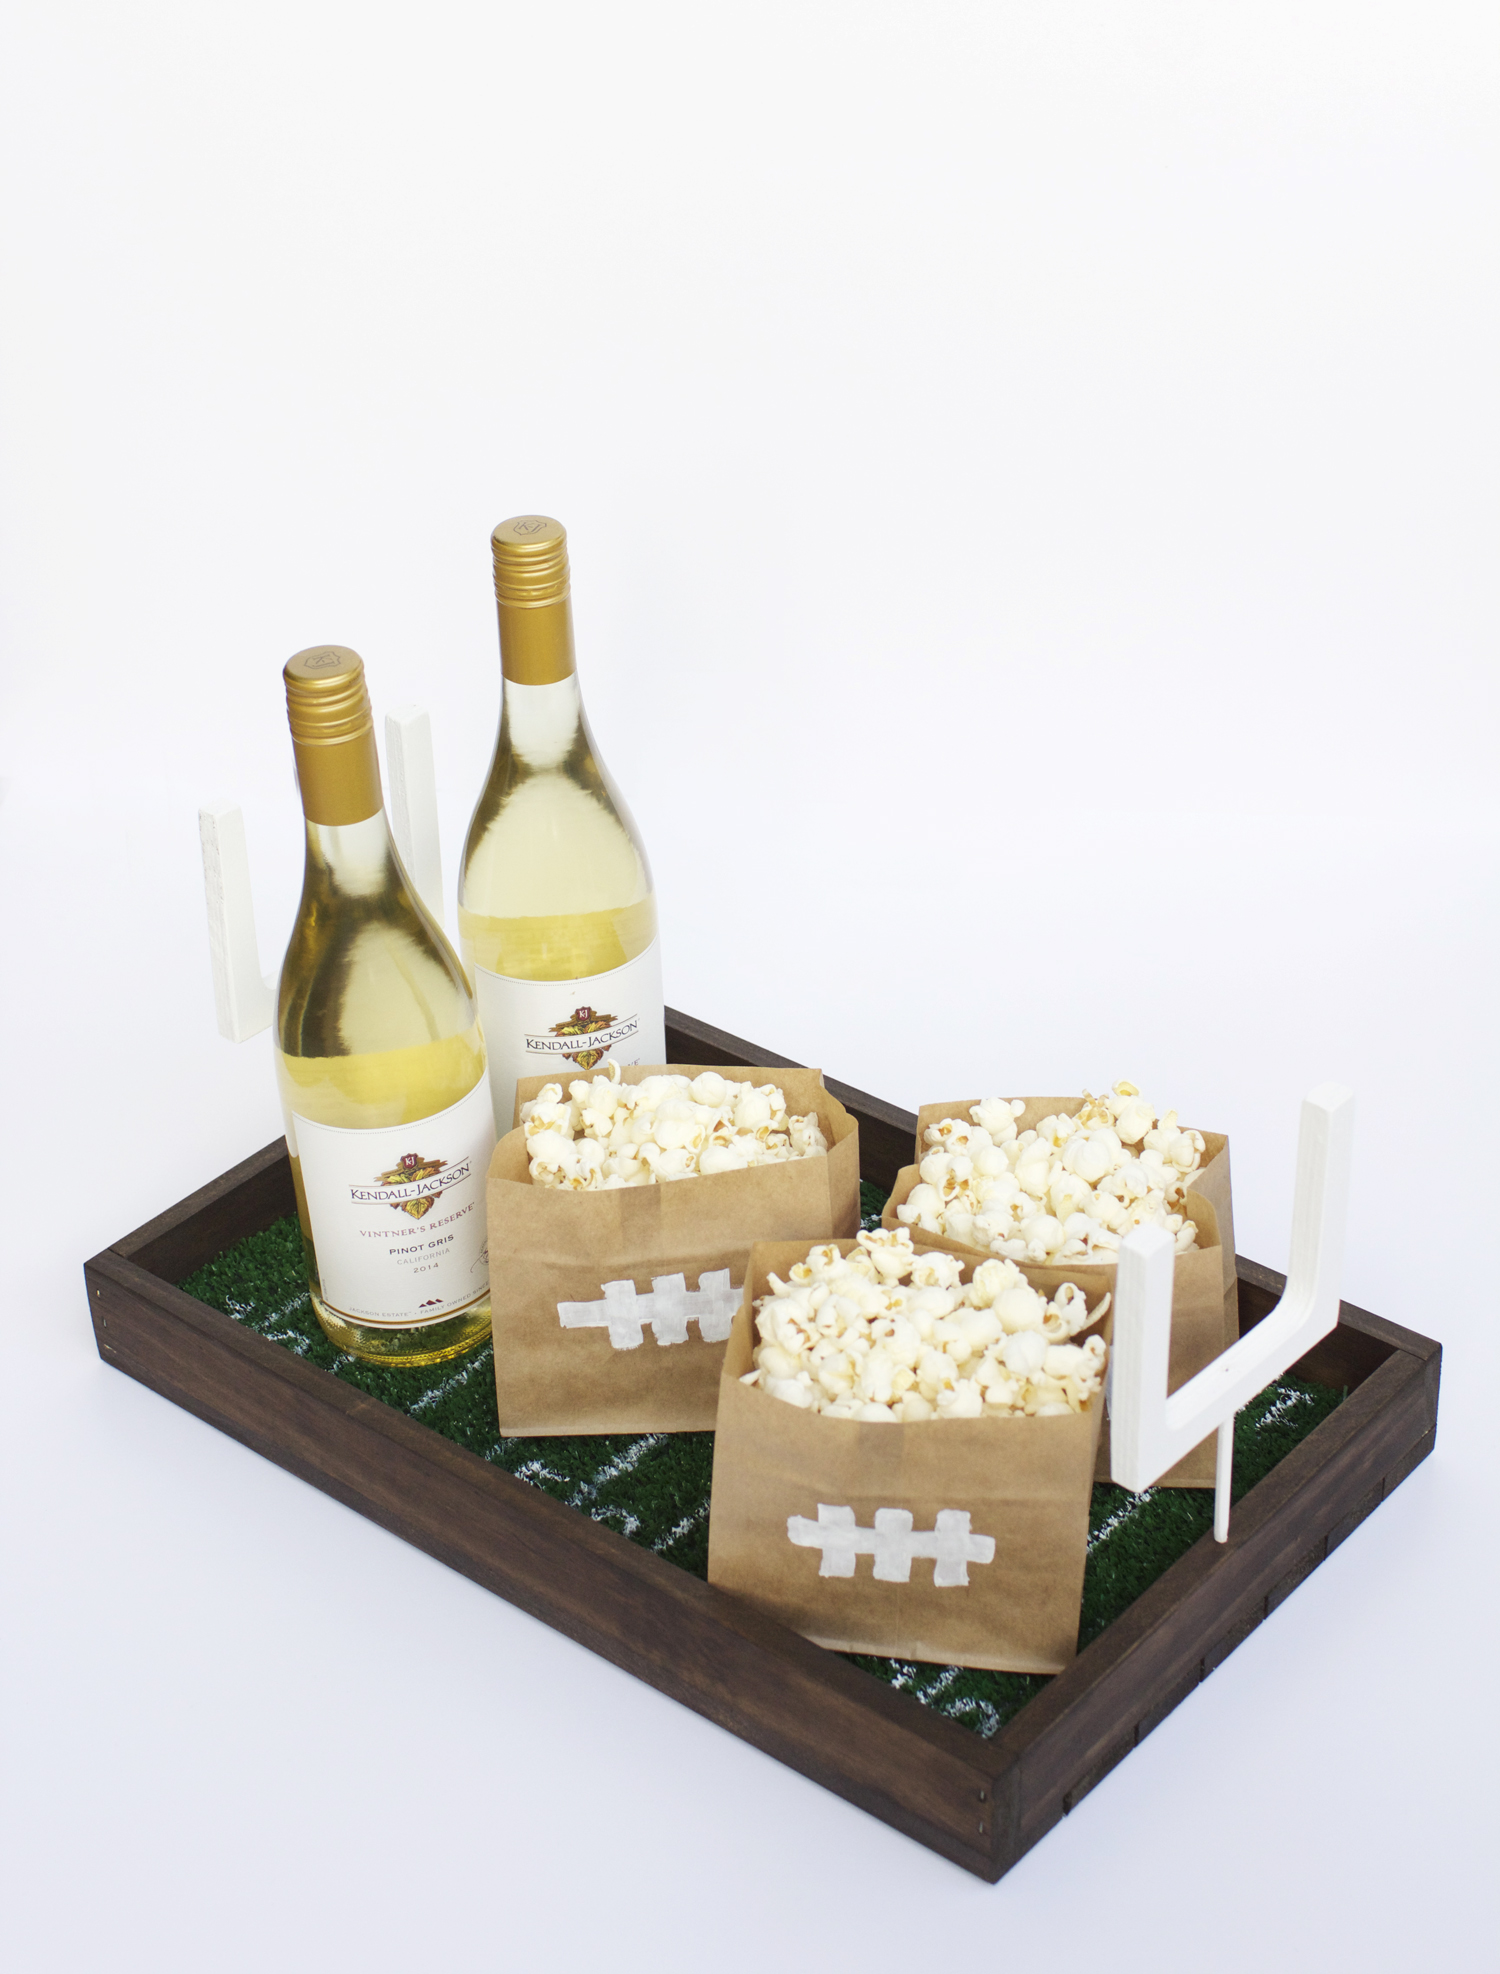 No matter which team you're rooting for, this DIY football field serving tray will make your snacks and wine feel even more special.